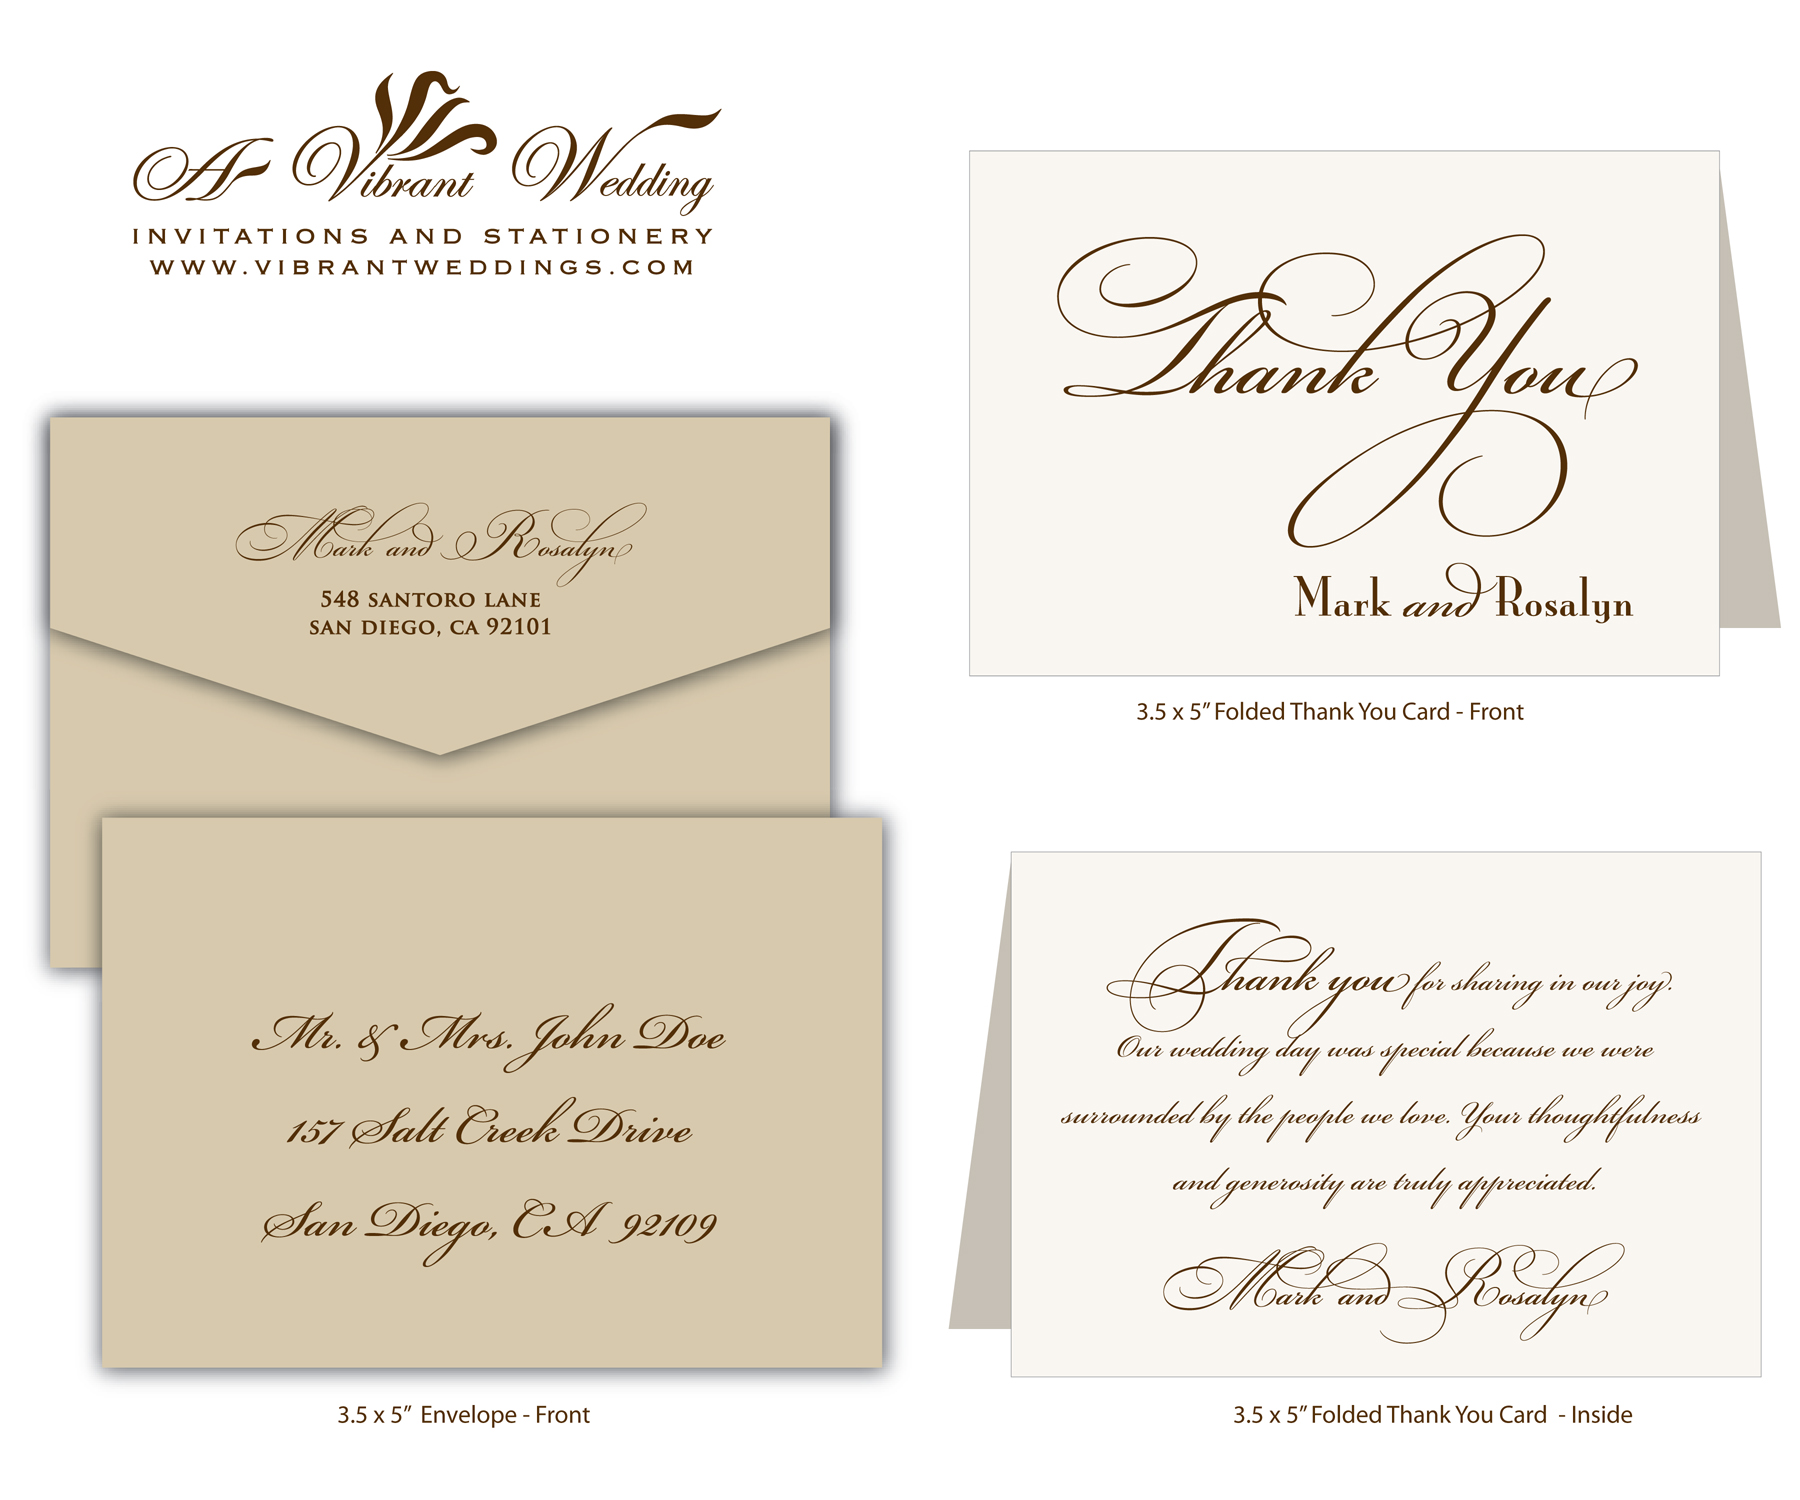 Wedding Thank You Note Wording Samples – What to Write in Thank You Cards Wedding